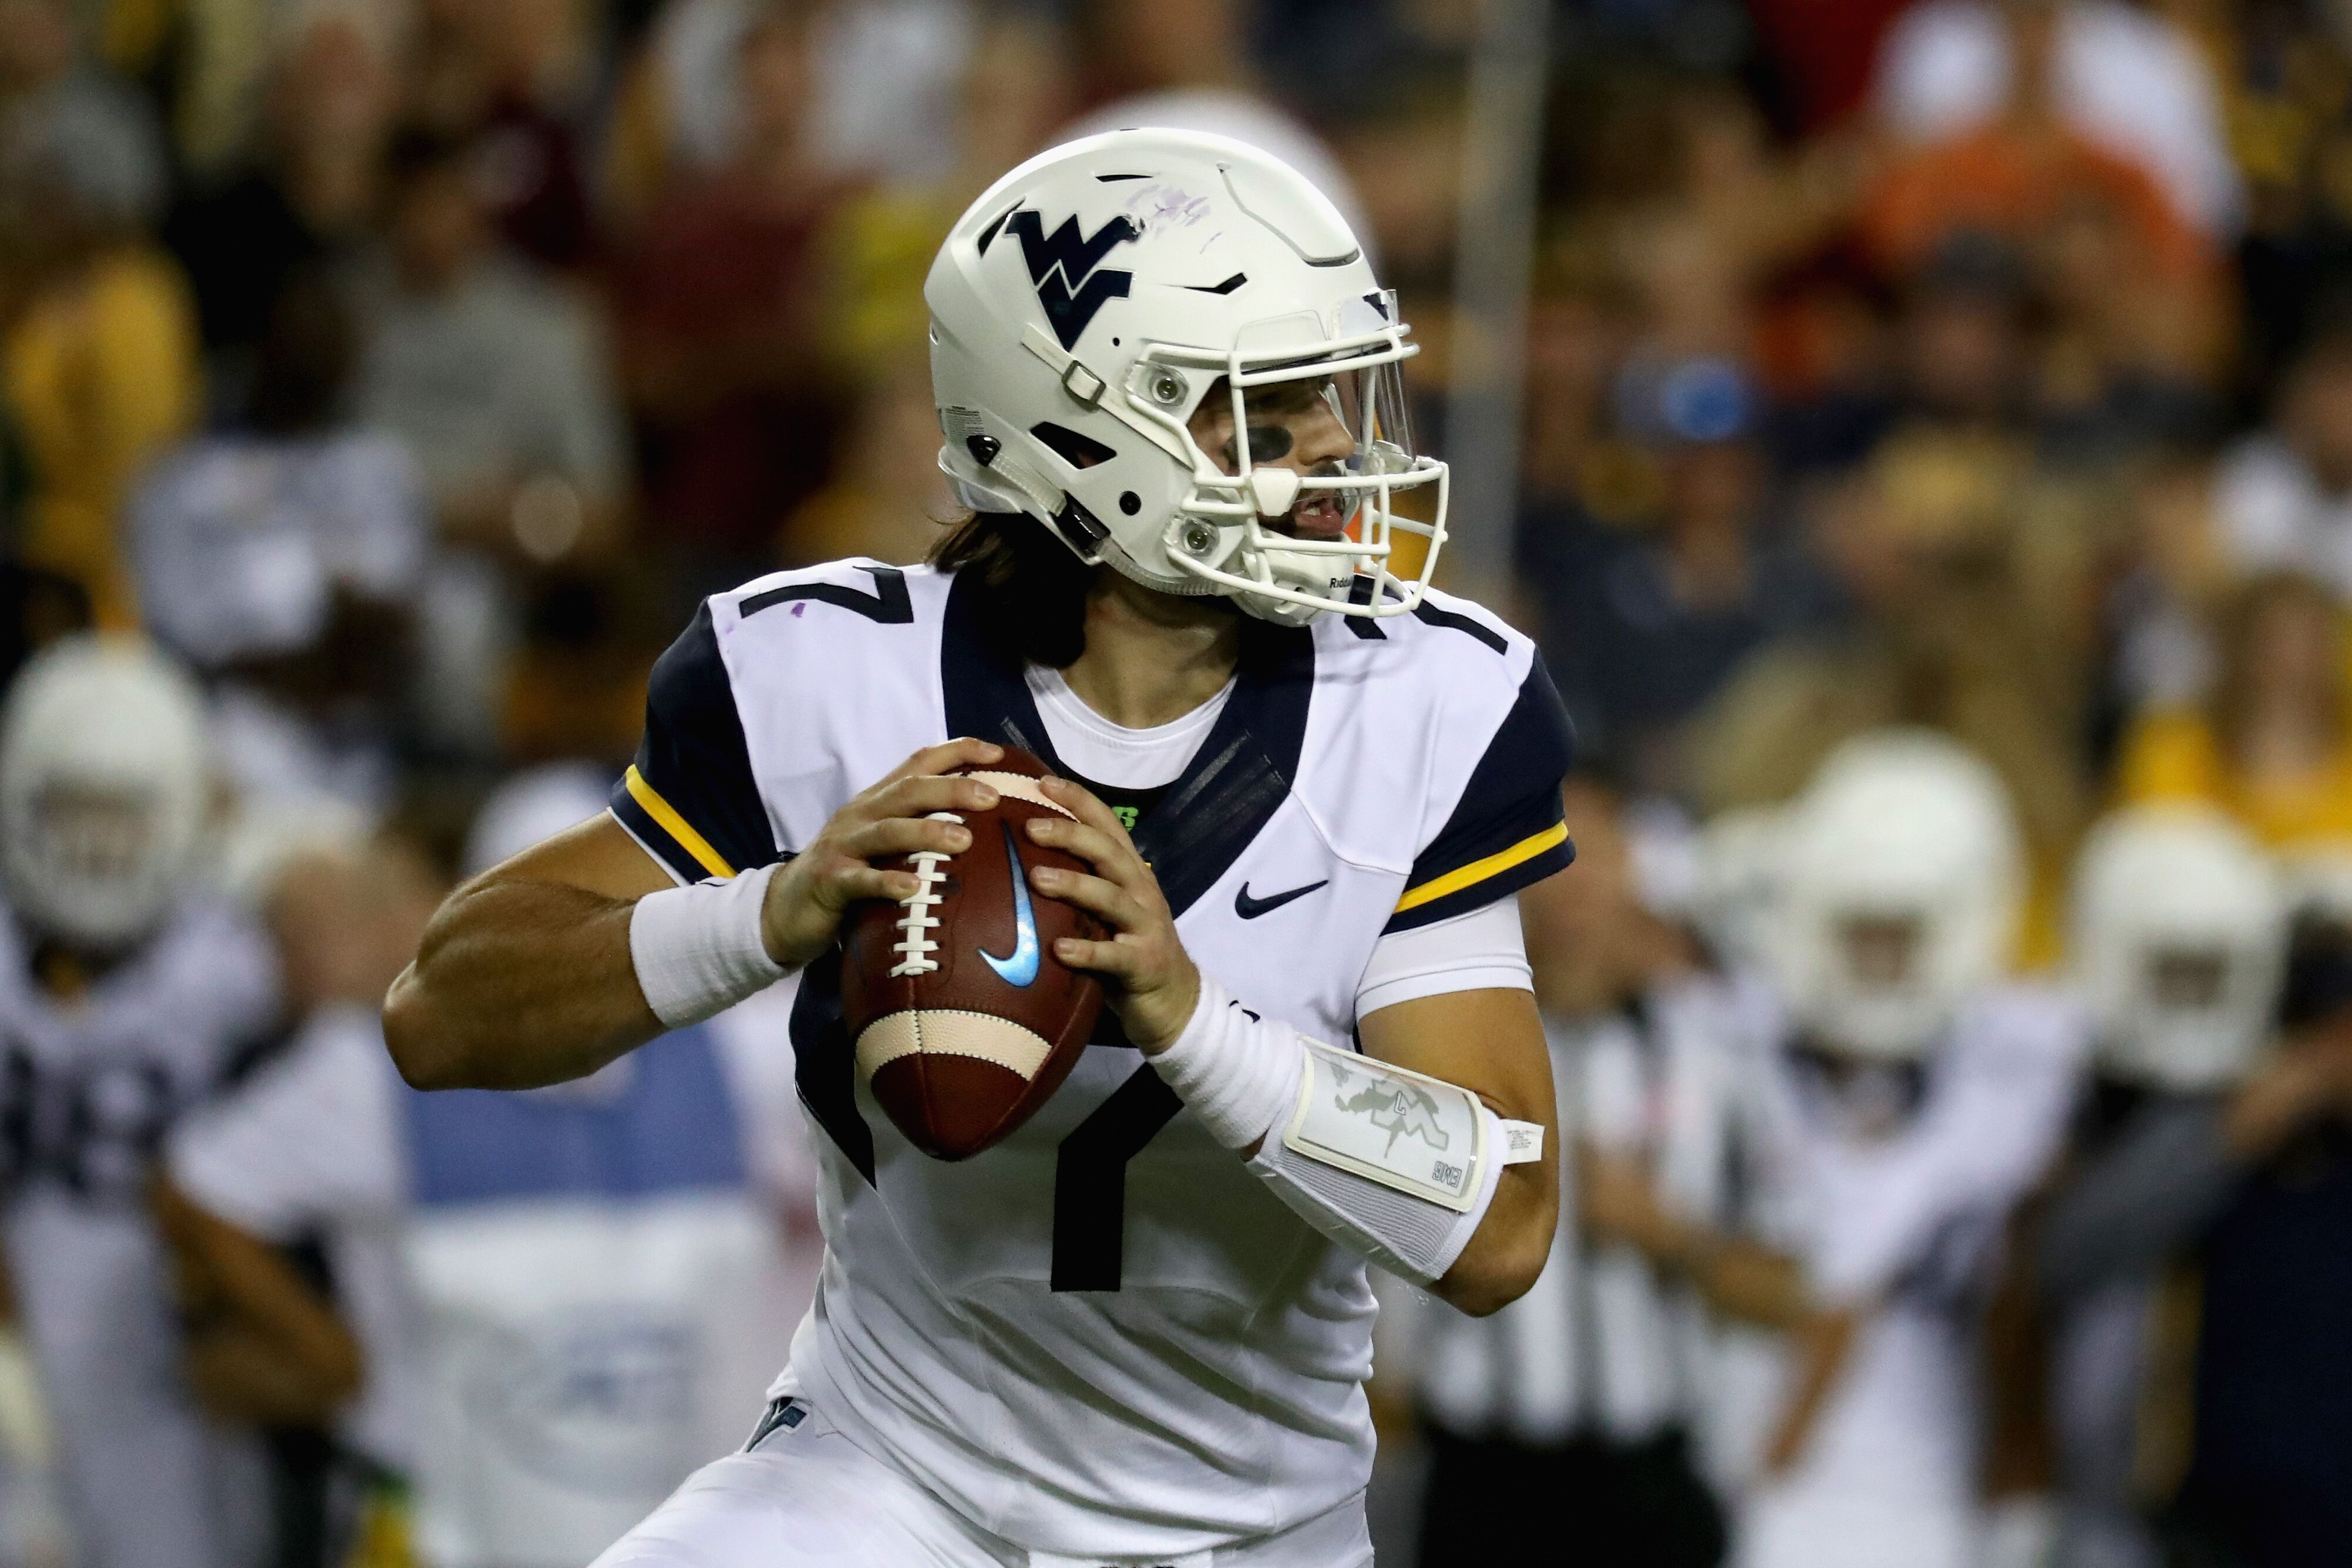 Visit ESPN to view the West Virginia Mountaineers team roster for the current season